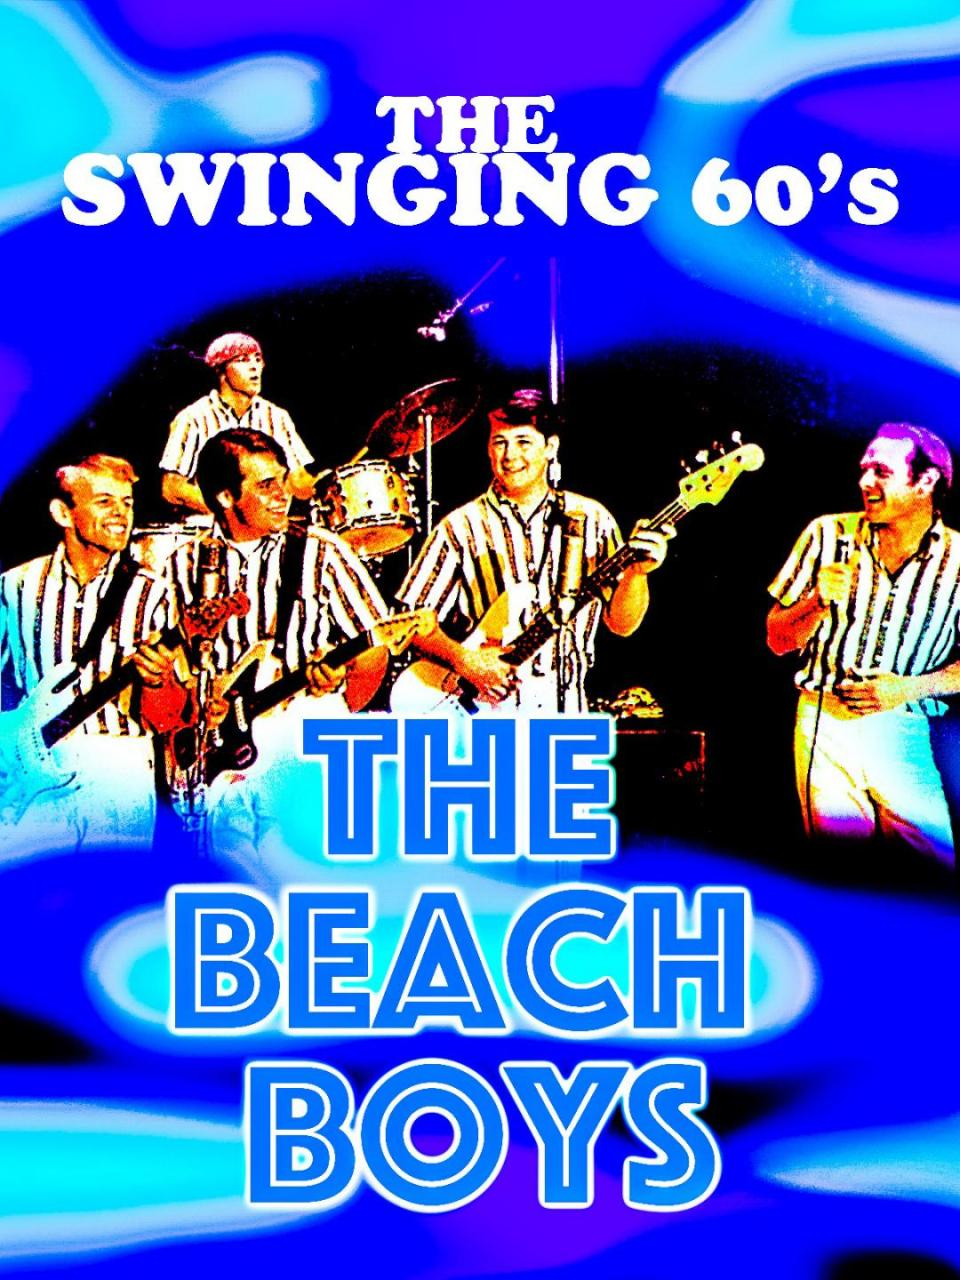 The Swinging Sixties - The Beach Boys